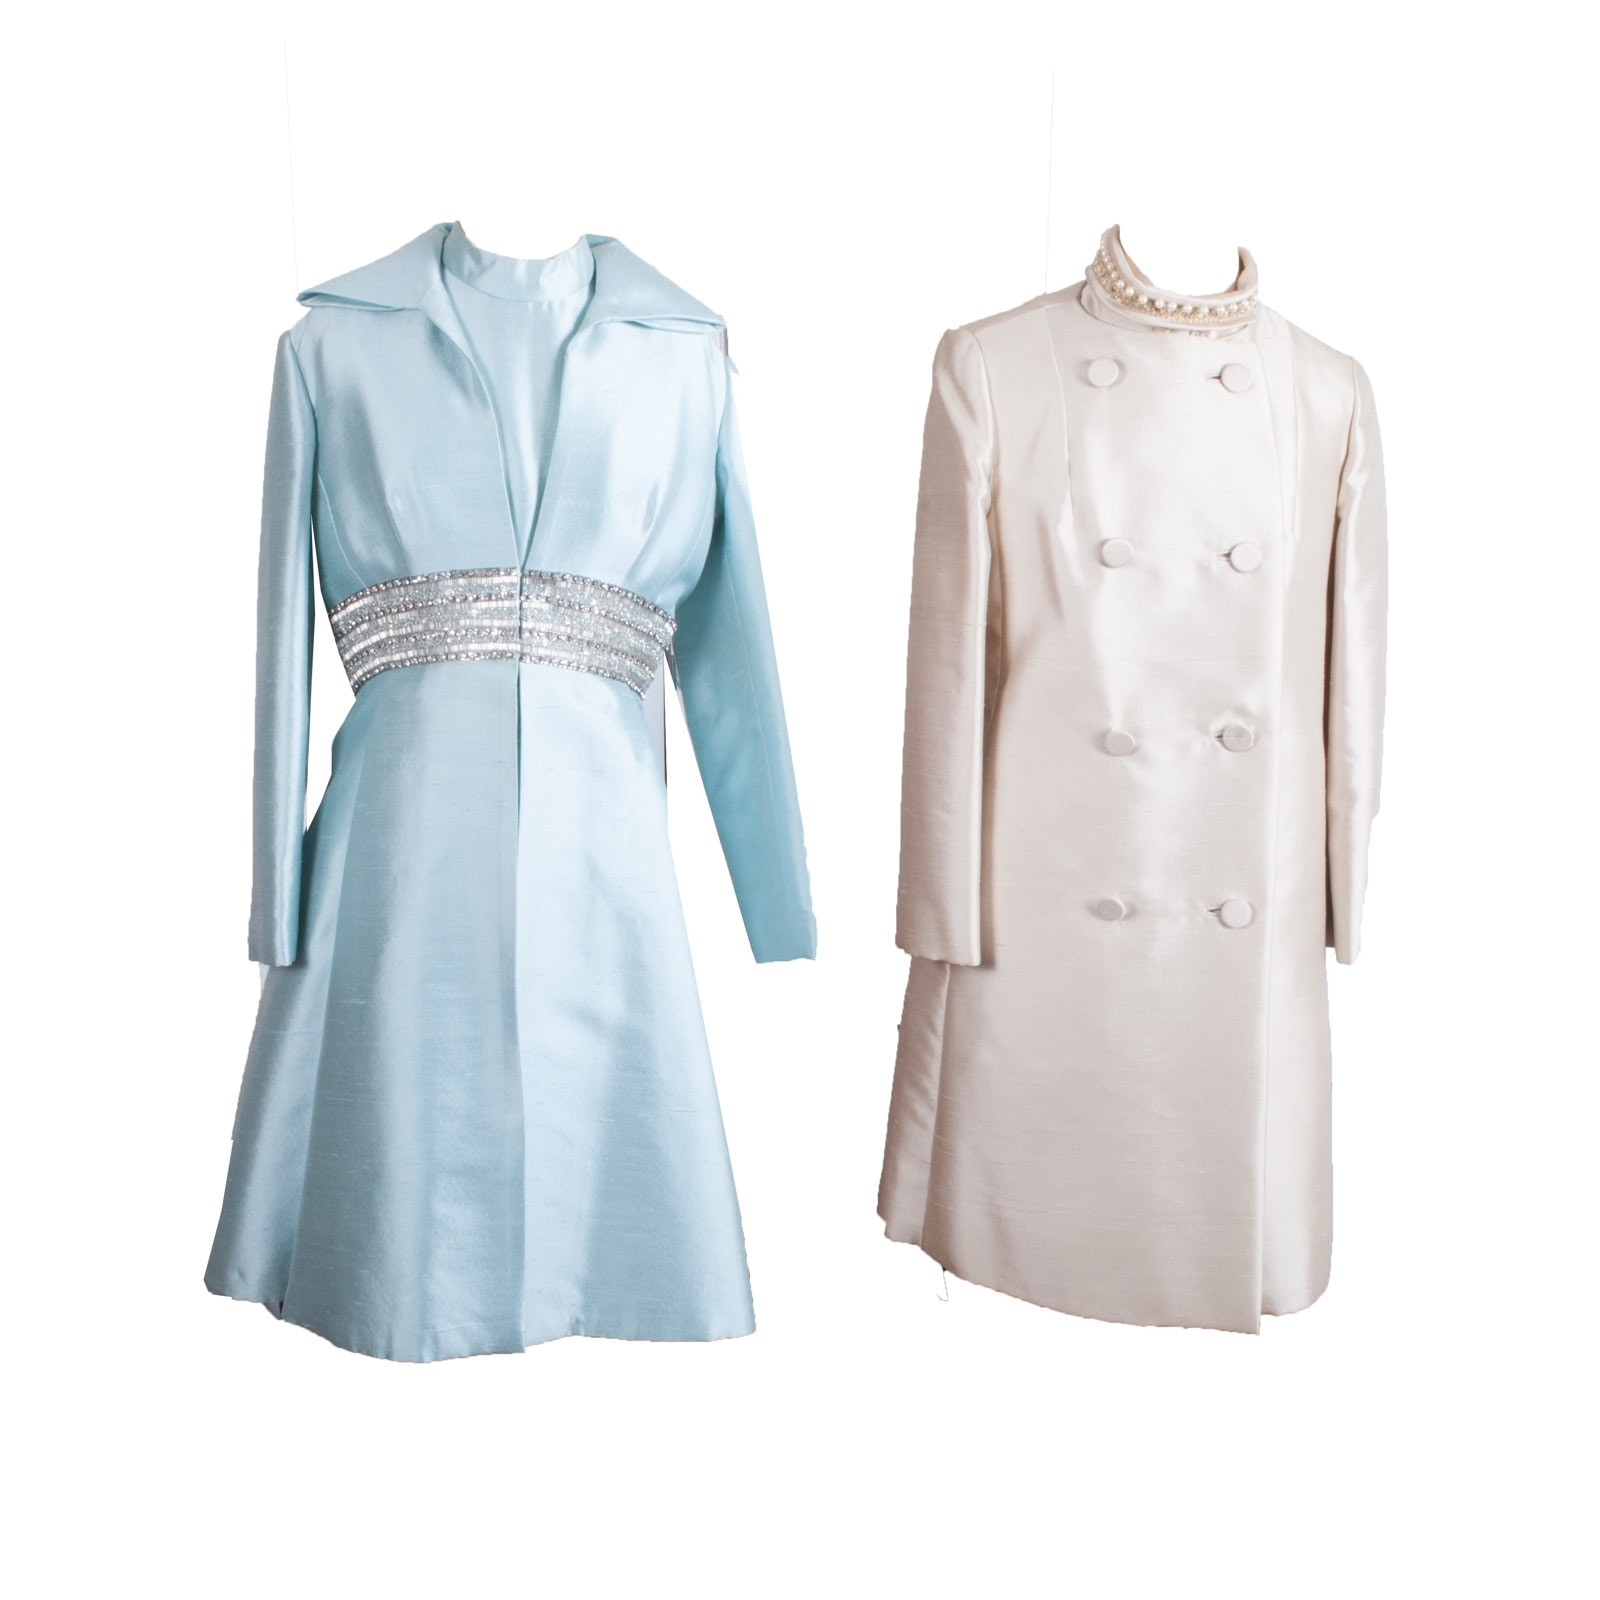 Pair of 1960s Vintage Raw Silk Coat and Sheath Dresses